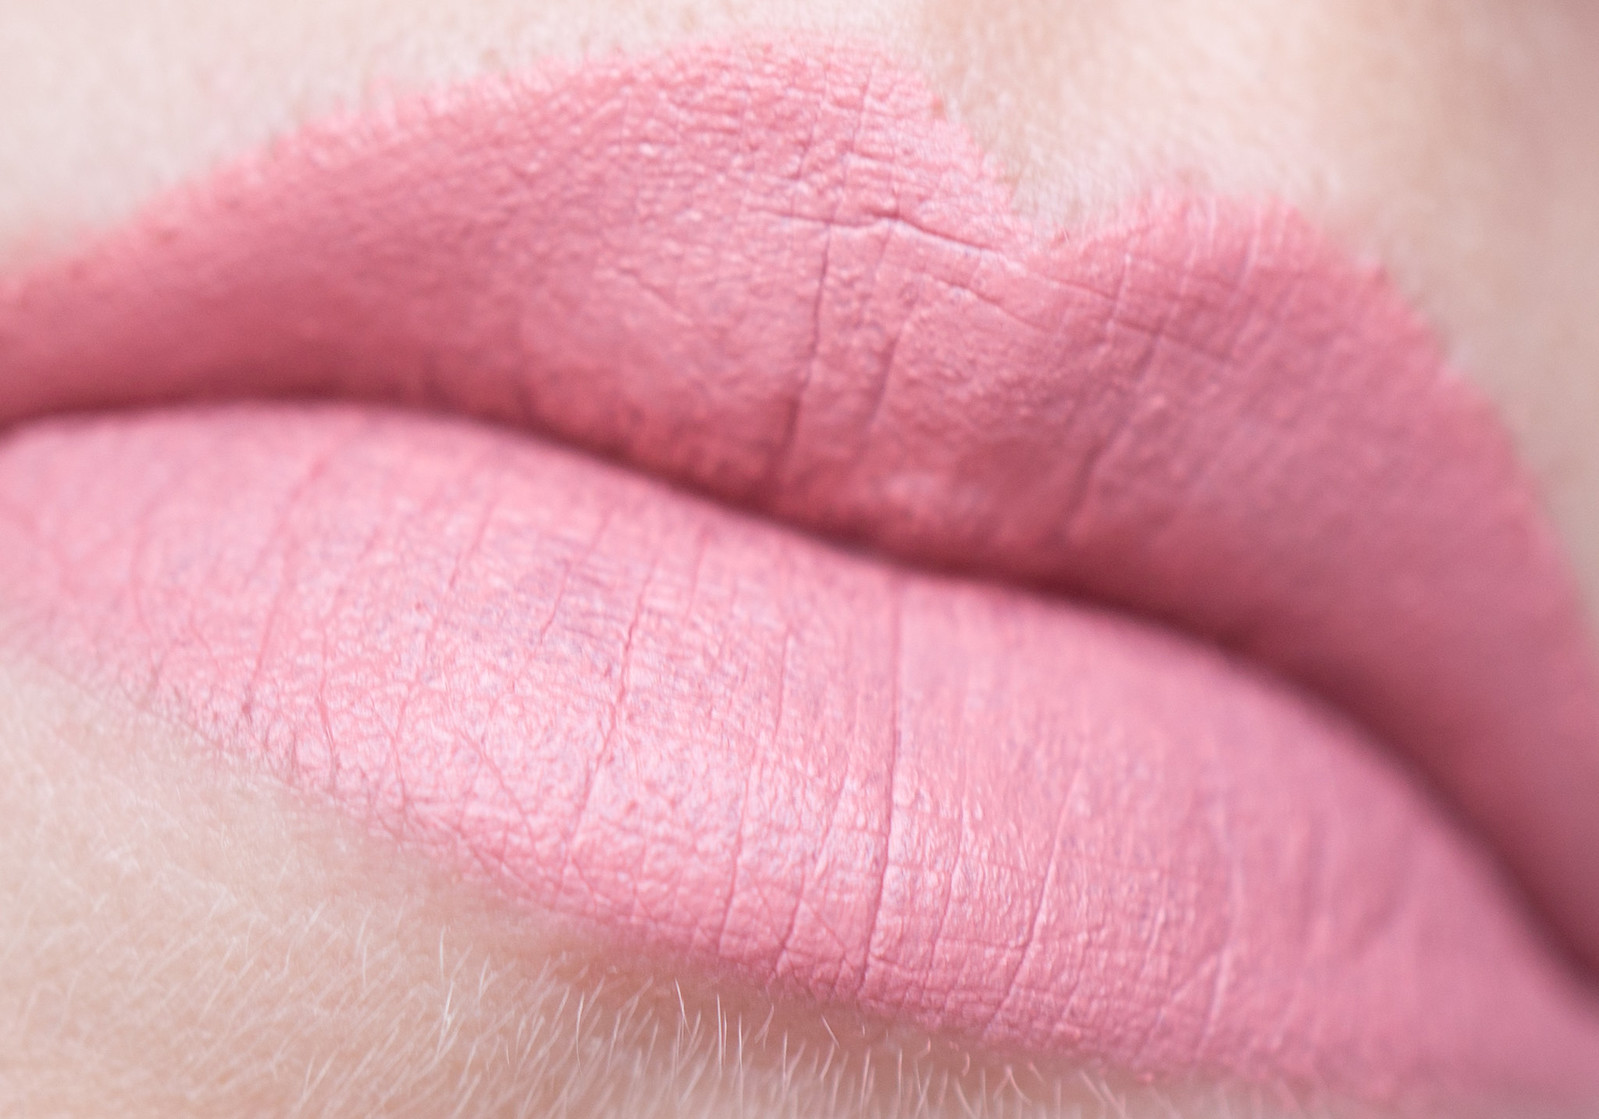 Maybelline Color Sensational Matte 982 Peach Buff